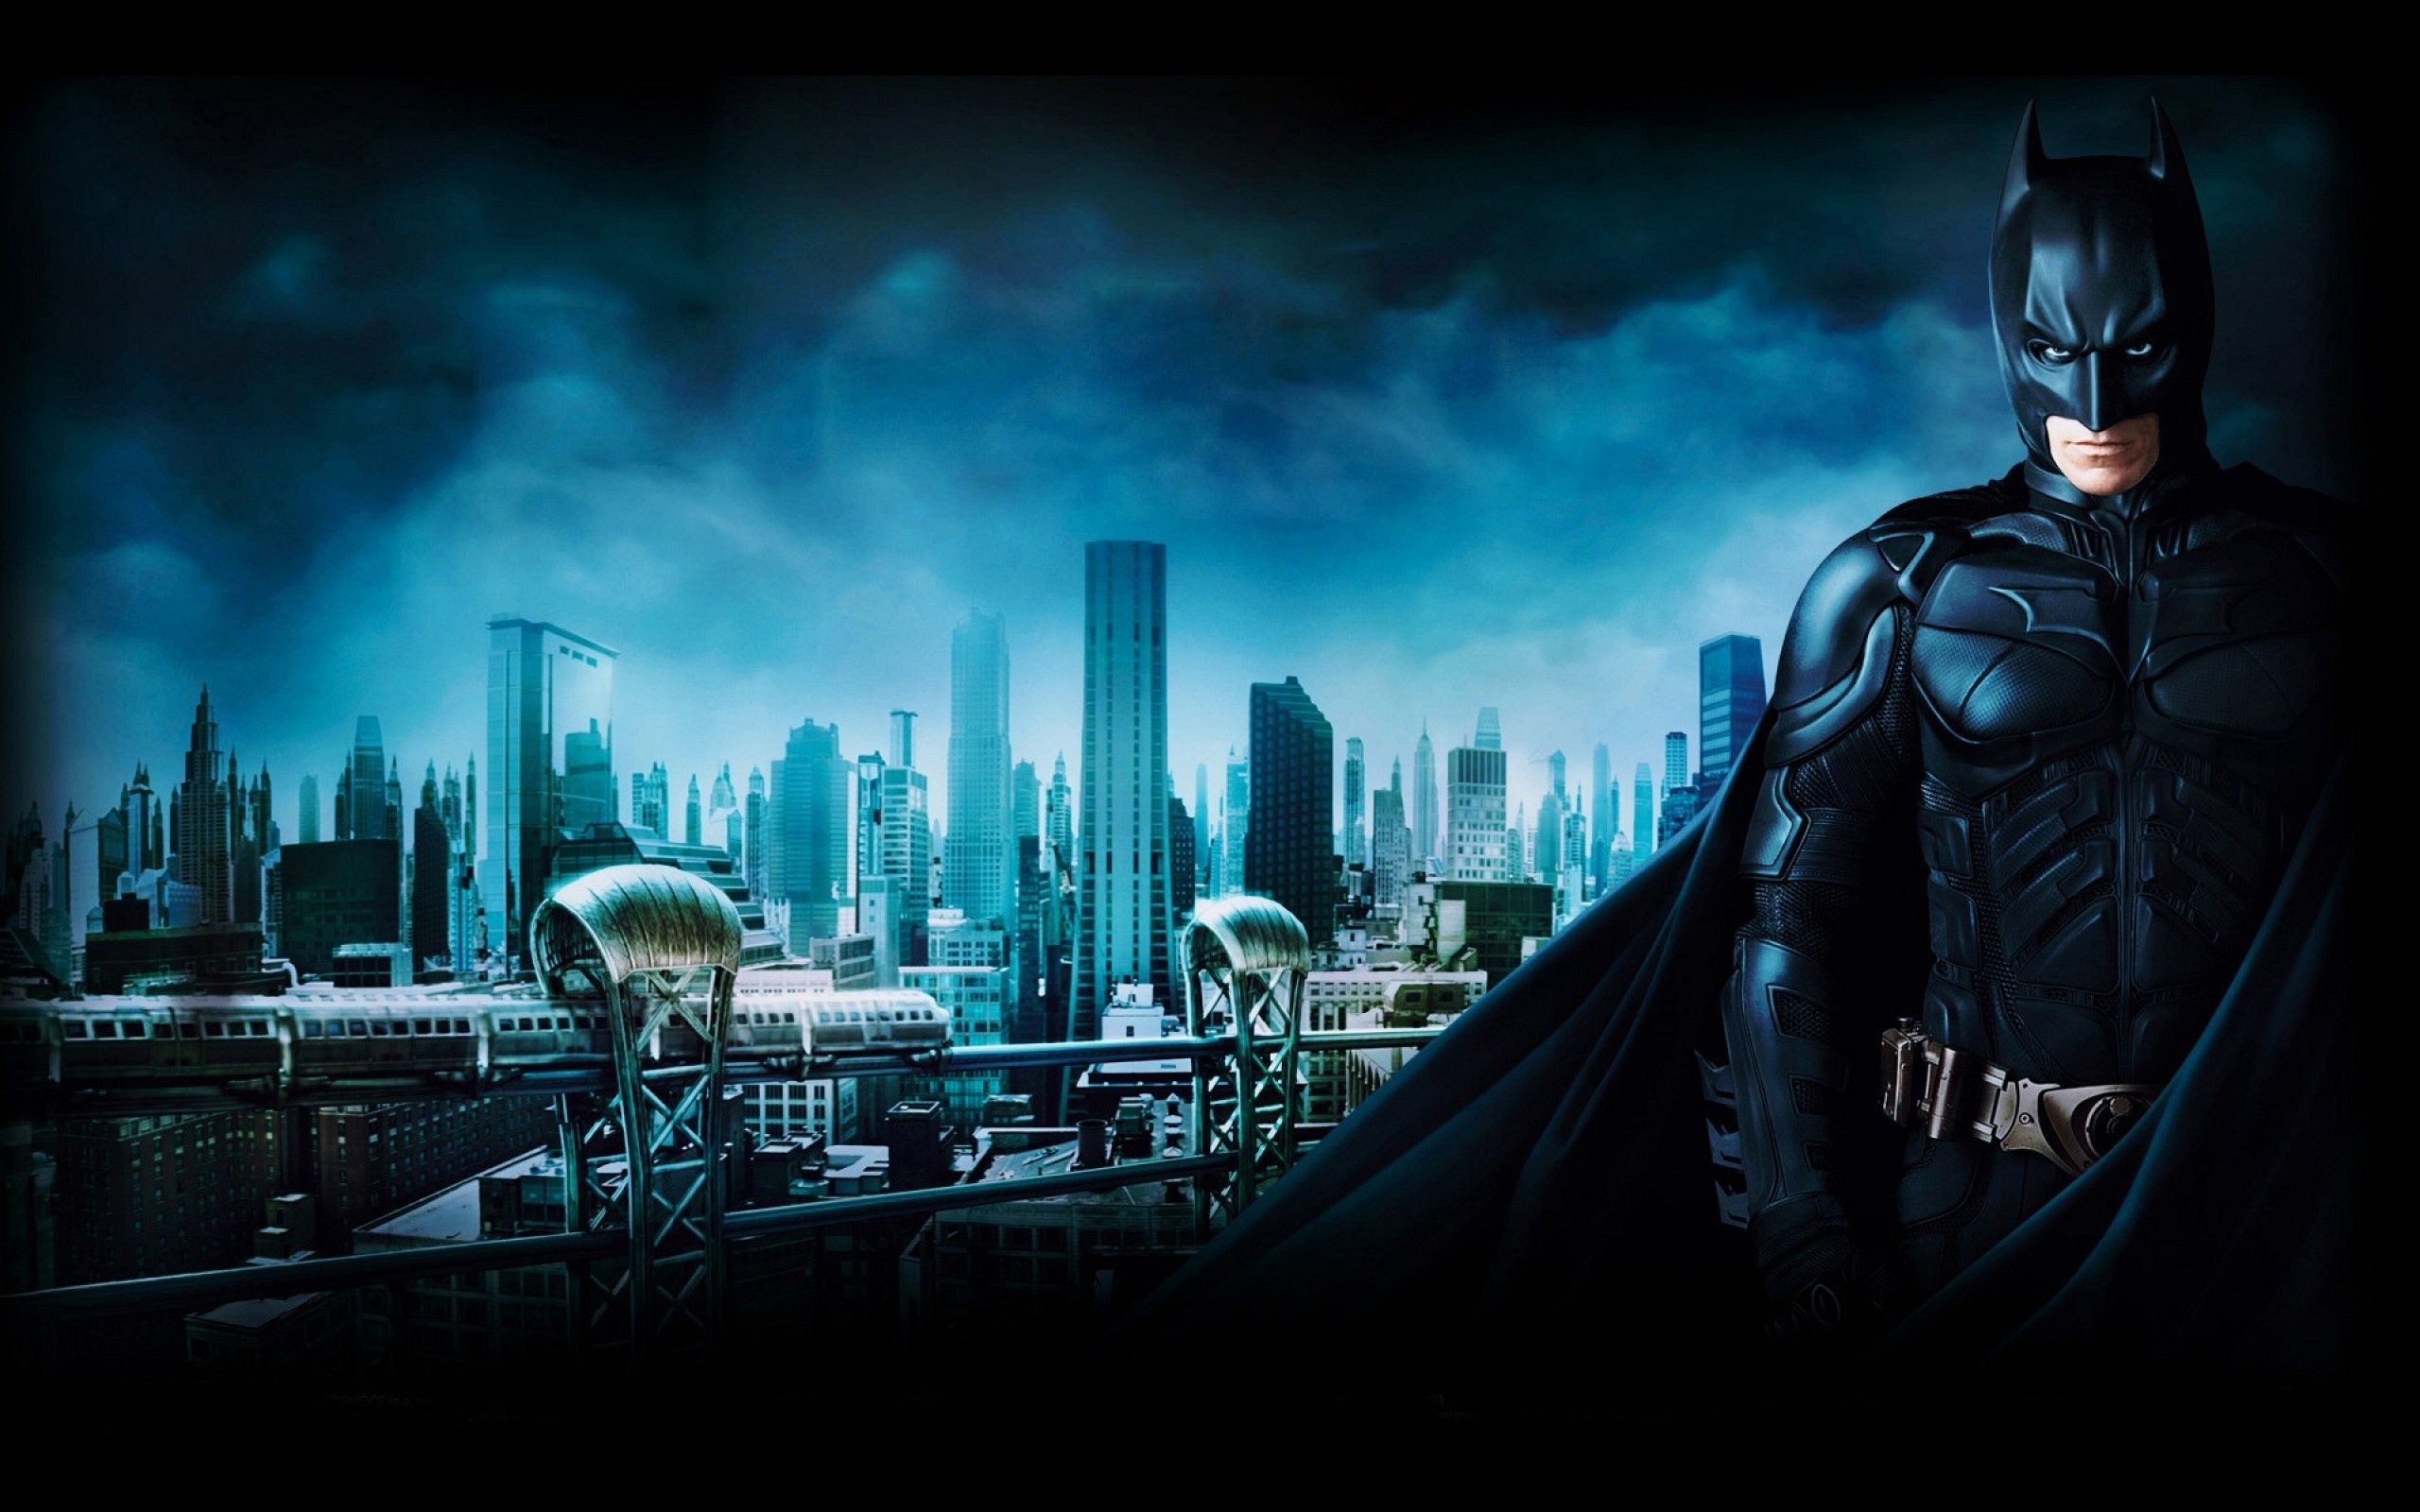 Batman Wallpaper 25601600 superhero desktop Celebrity and Movie 2560x1600